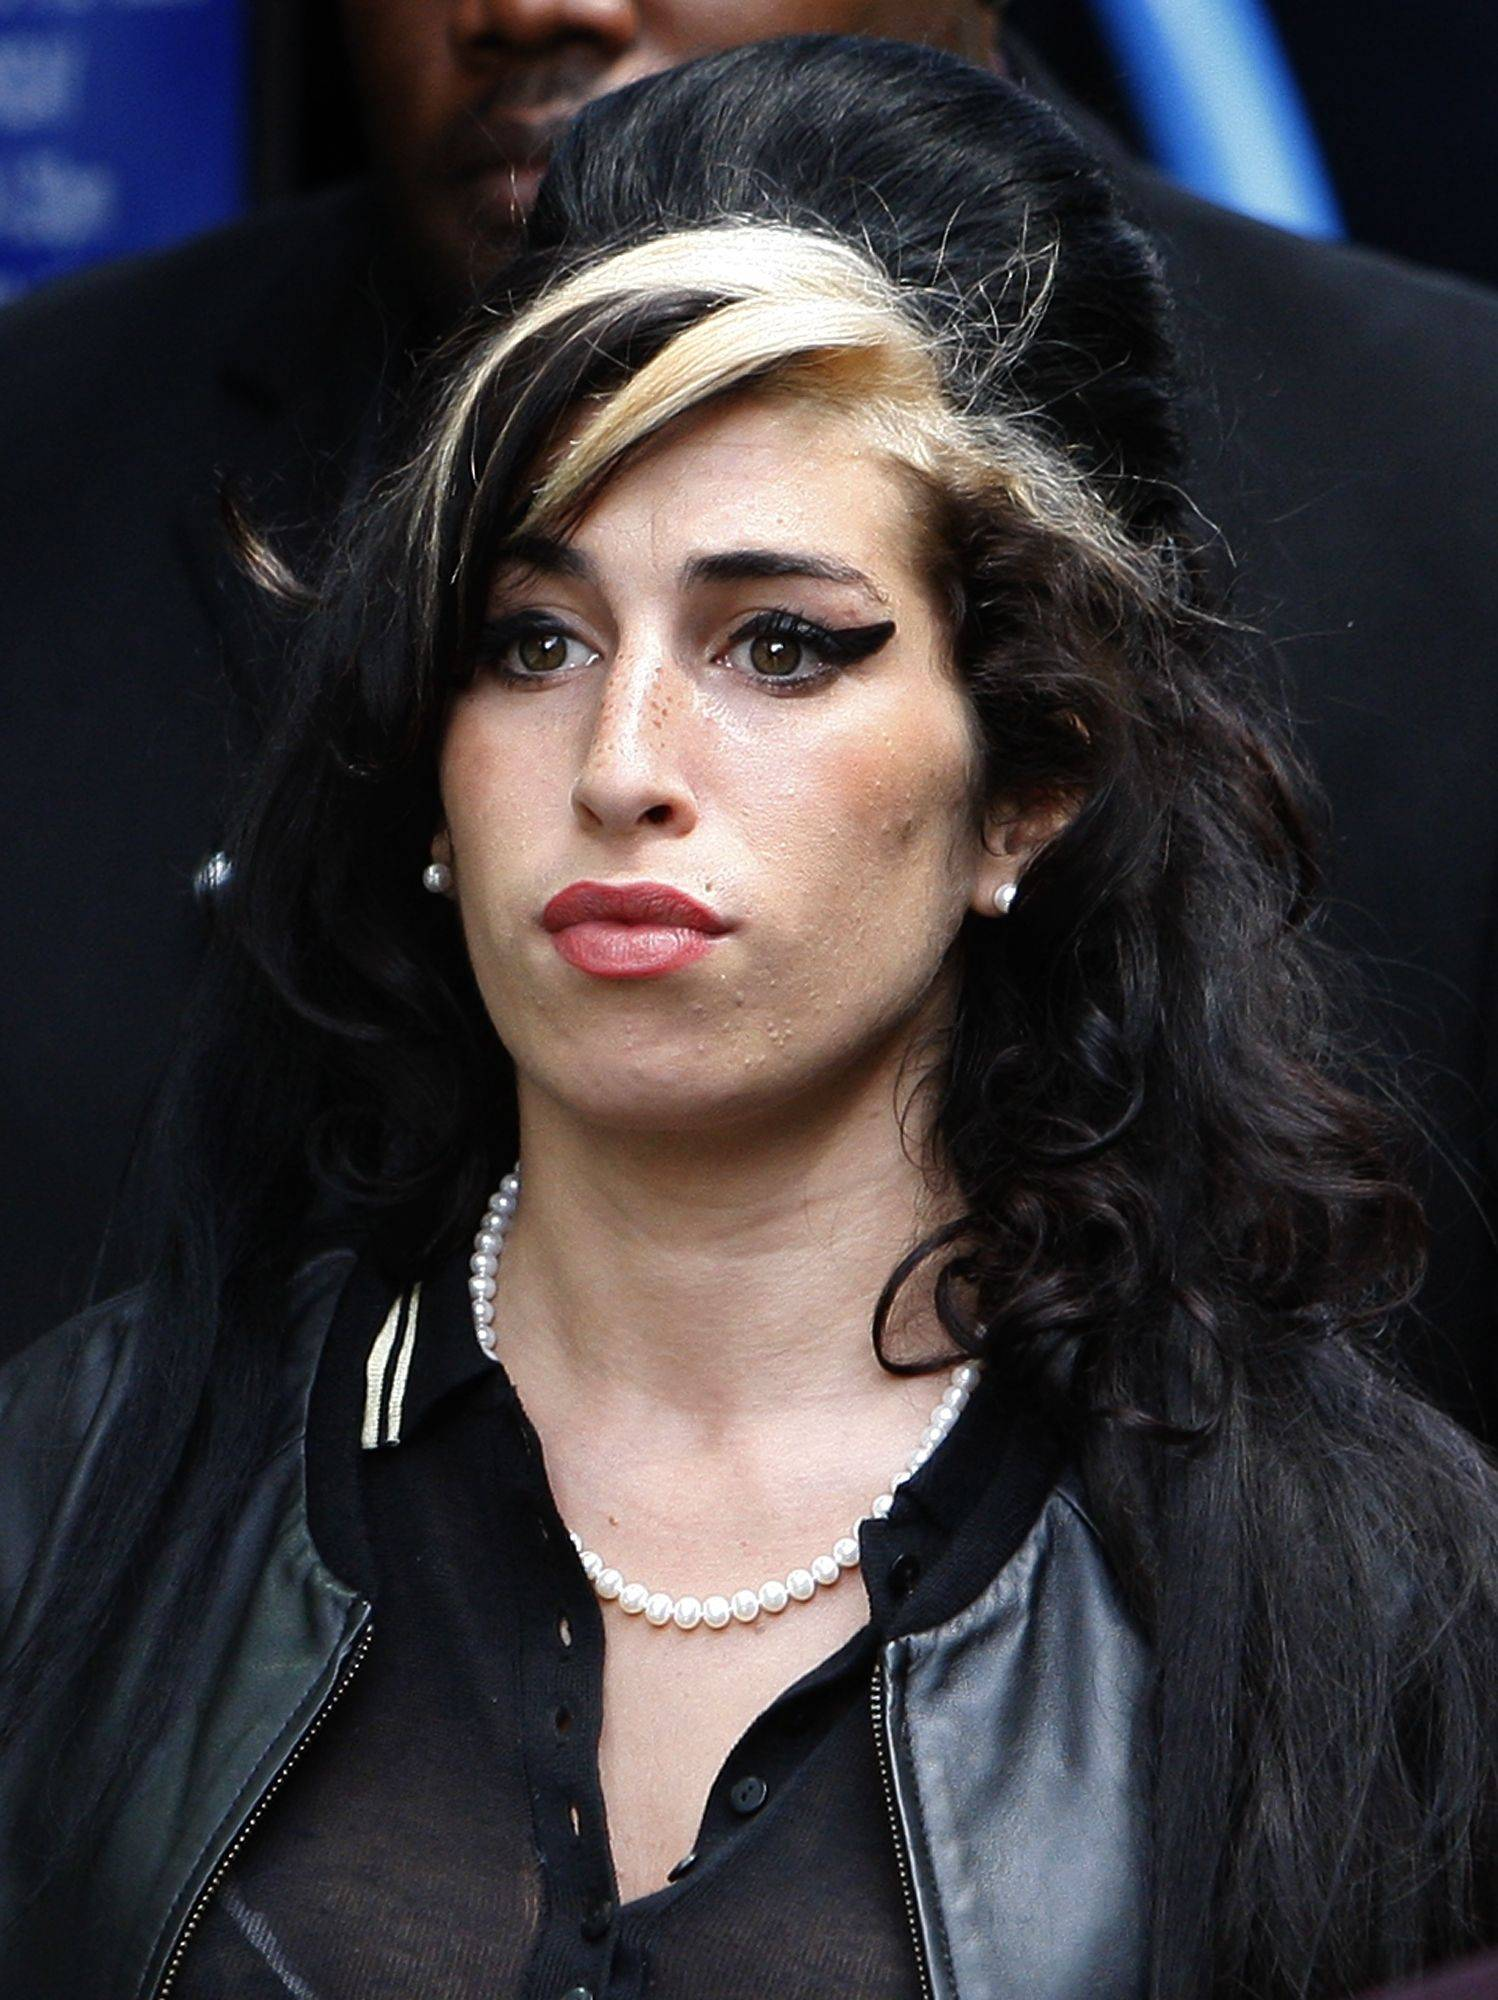 Amy Winehouse leaves Westminster magistrates court in London where a judge acquitted her of assaulting a fan who asked to take her picture. District Judge Timothy Workman found the 25-year-old singer not guilty of punching dancer Sherene Flash in the eye after the fan asked to take her picture following a charity ball in September.